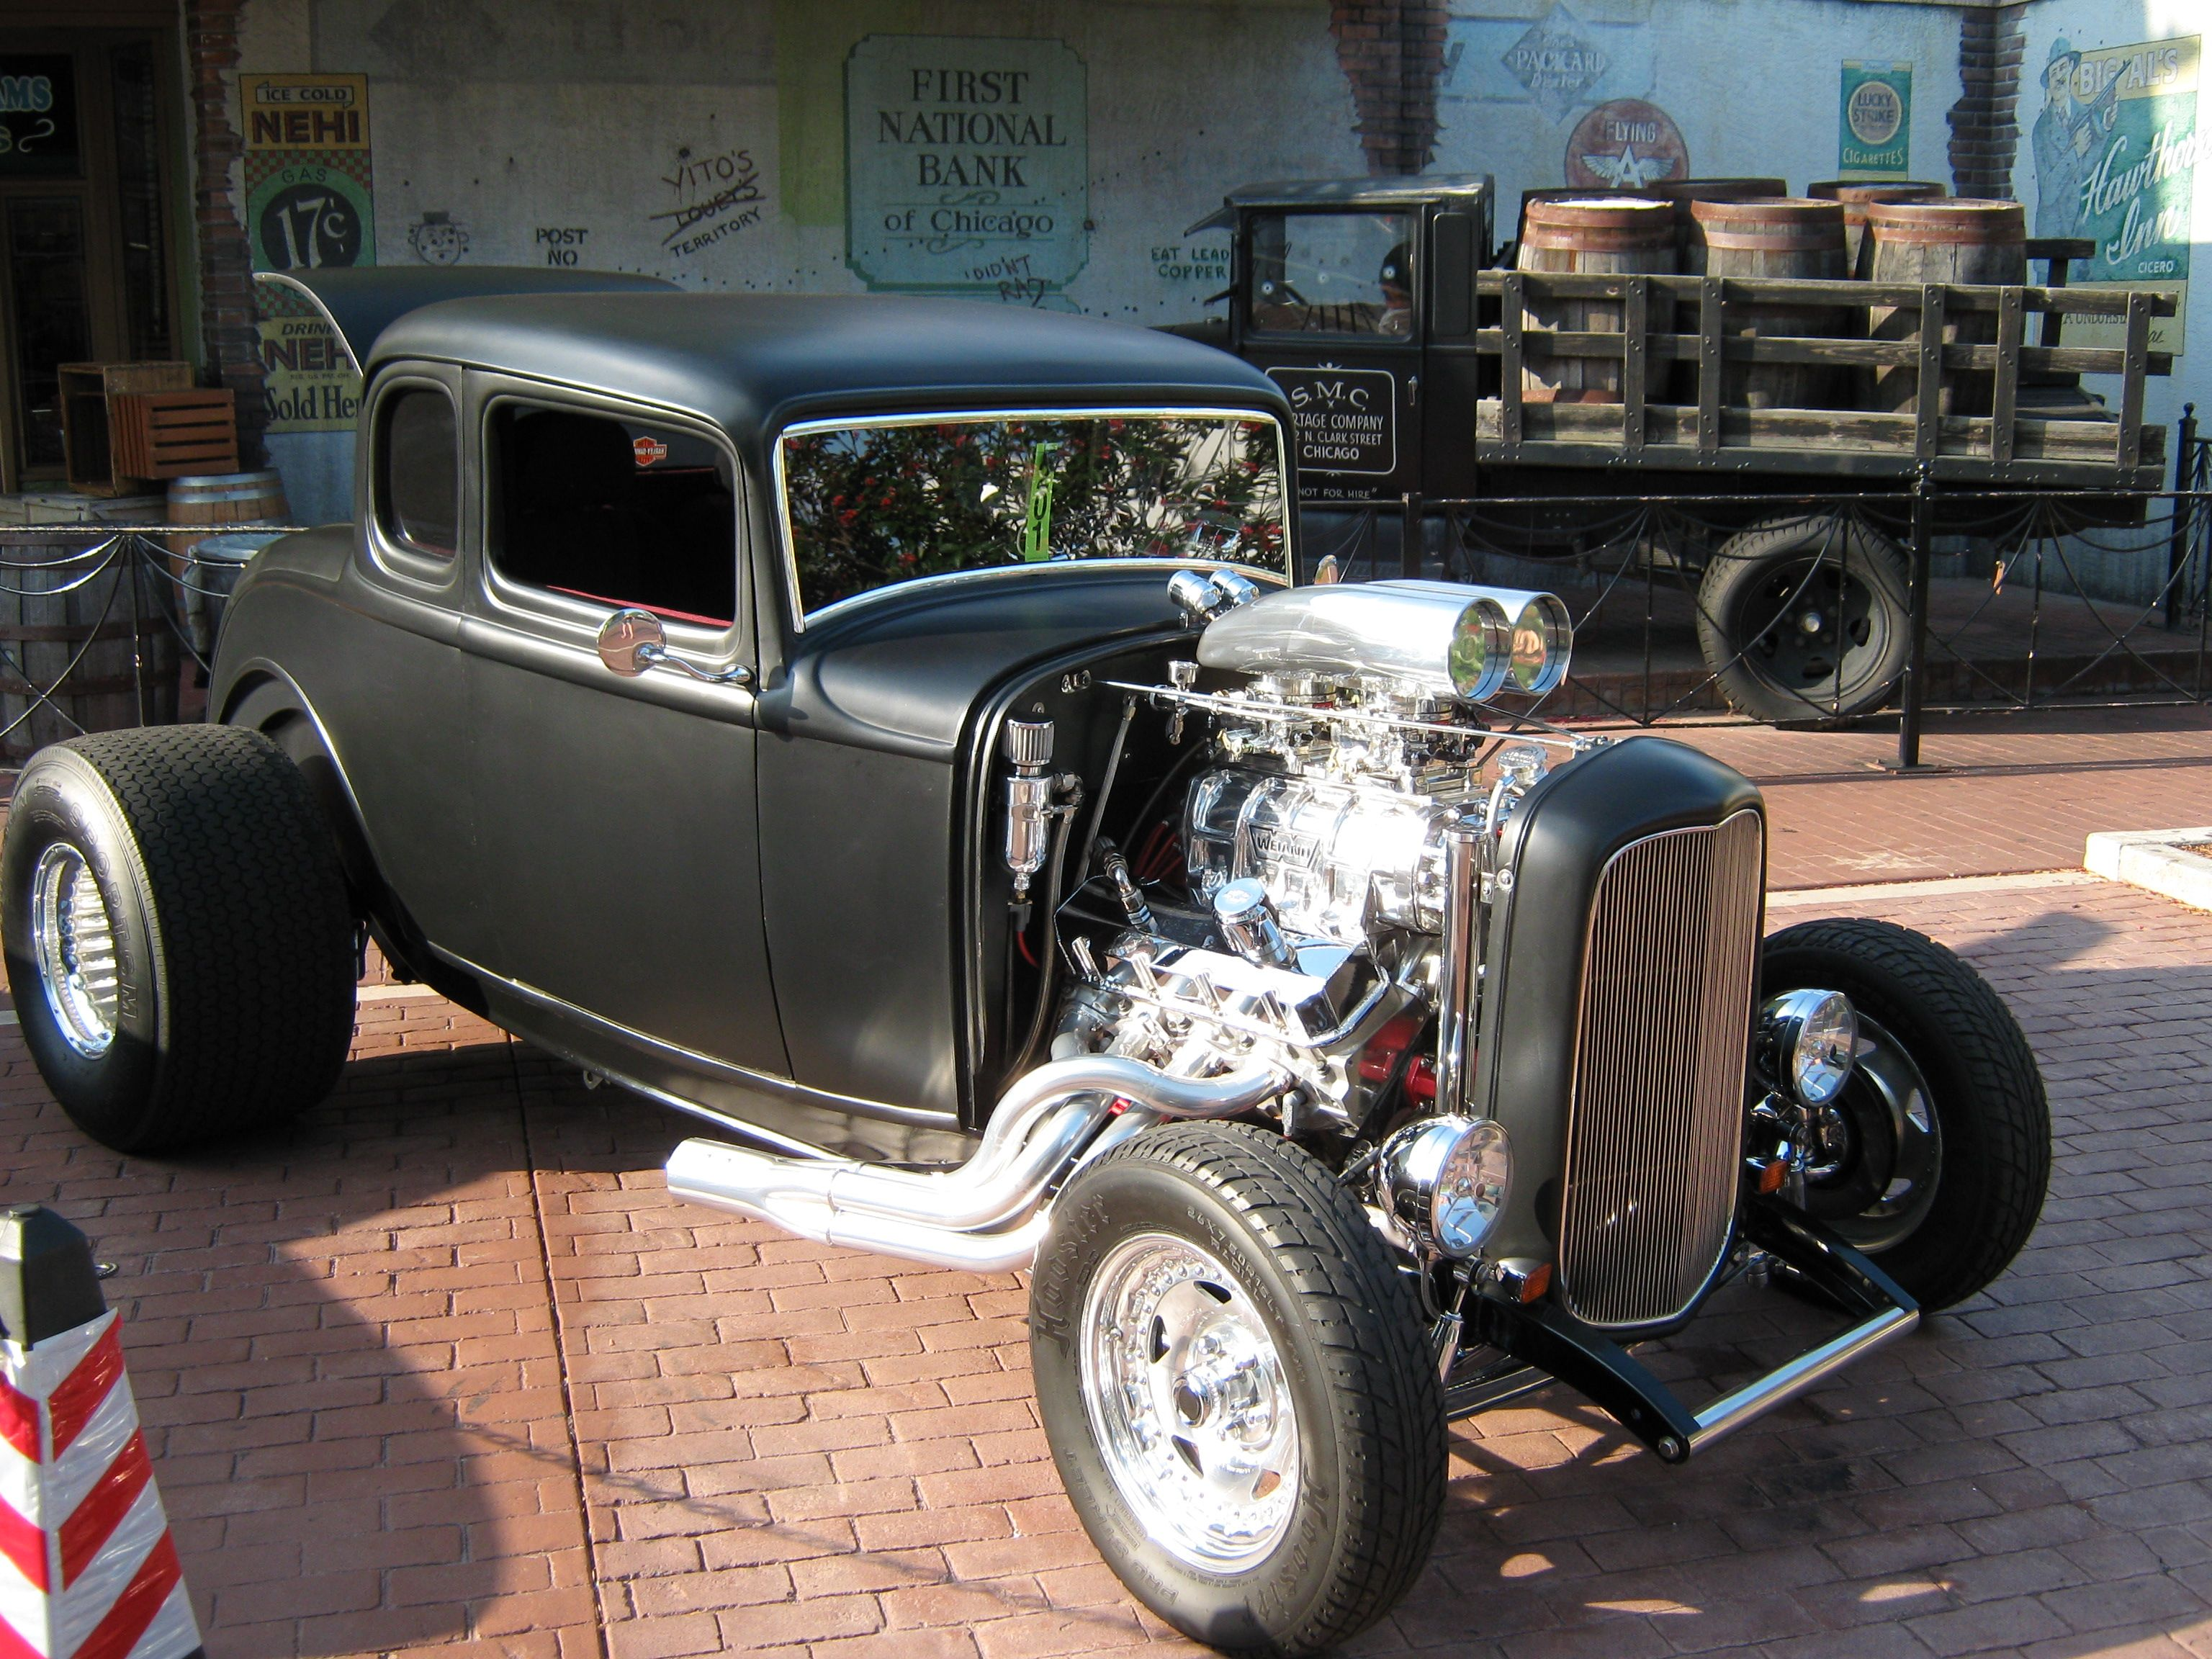 201 best Old cars and trucks images on Pinterest | Vintage cars ...